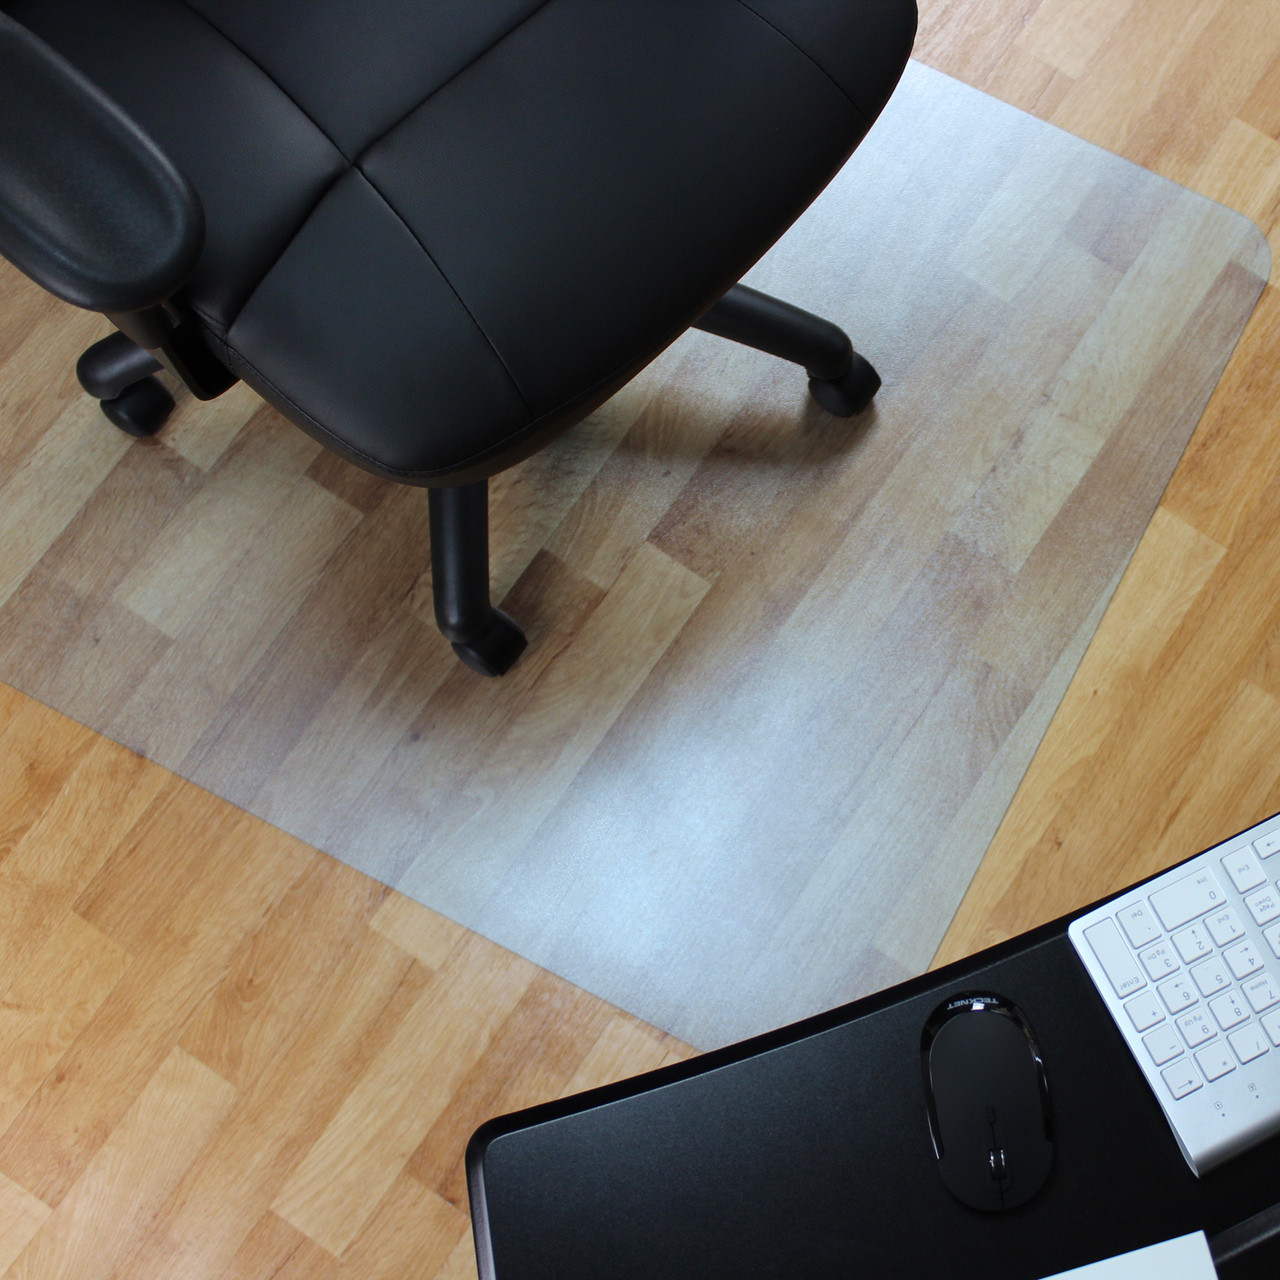 Vinyle Pvc Marvelux Vinyl Pvc Rectangular Chair Mat For Hard Floors Transparent Hardwood Floor Protector Multiple Sizes